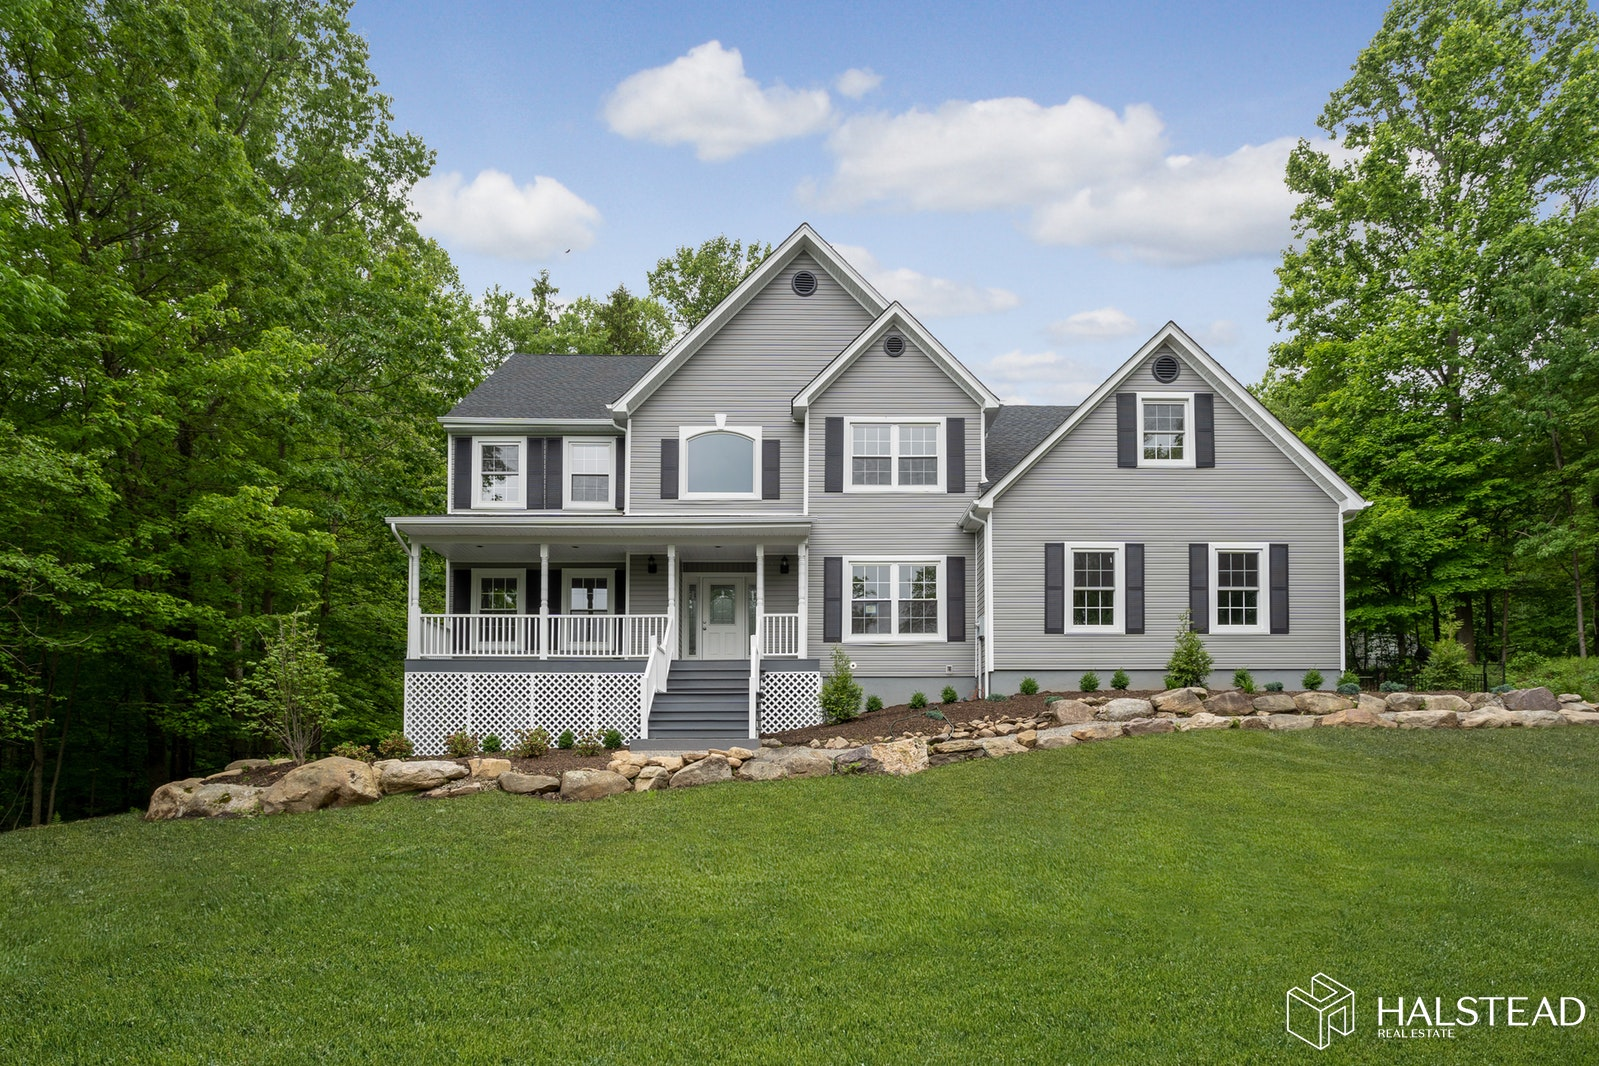 1 Wood Hollow Trail, Jefferson Township, New Jersey, 07438, $579,900, Property For Sale, Halstead Real Estate, Photo 1